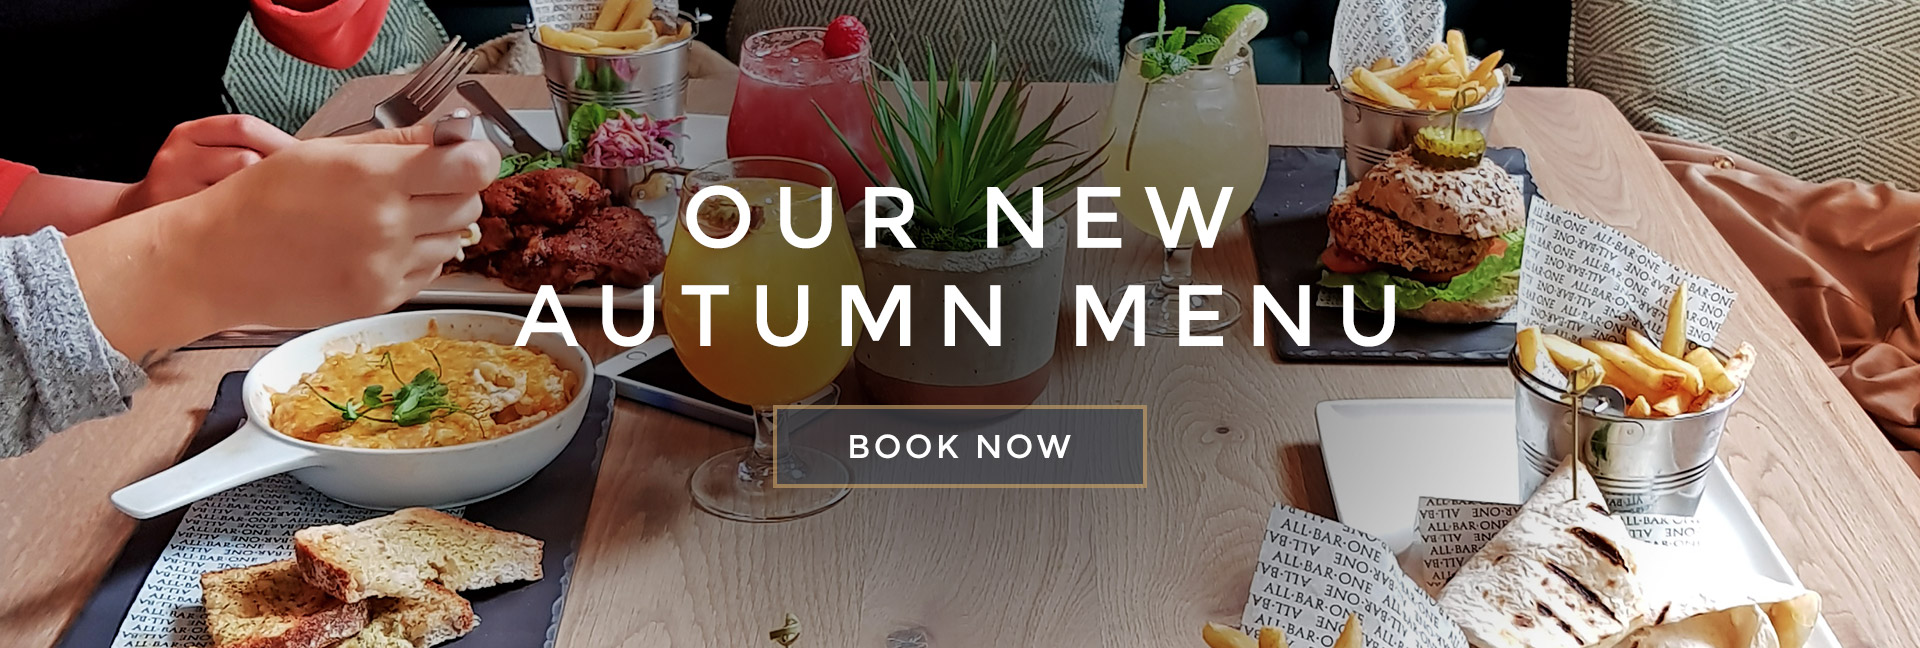 Our new Autumn menu at All Bar One Waterloo - Book now